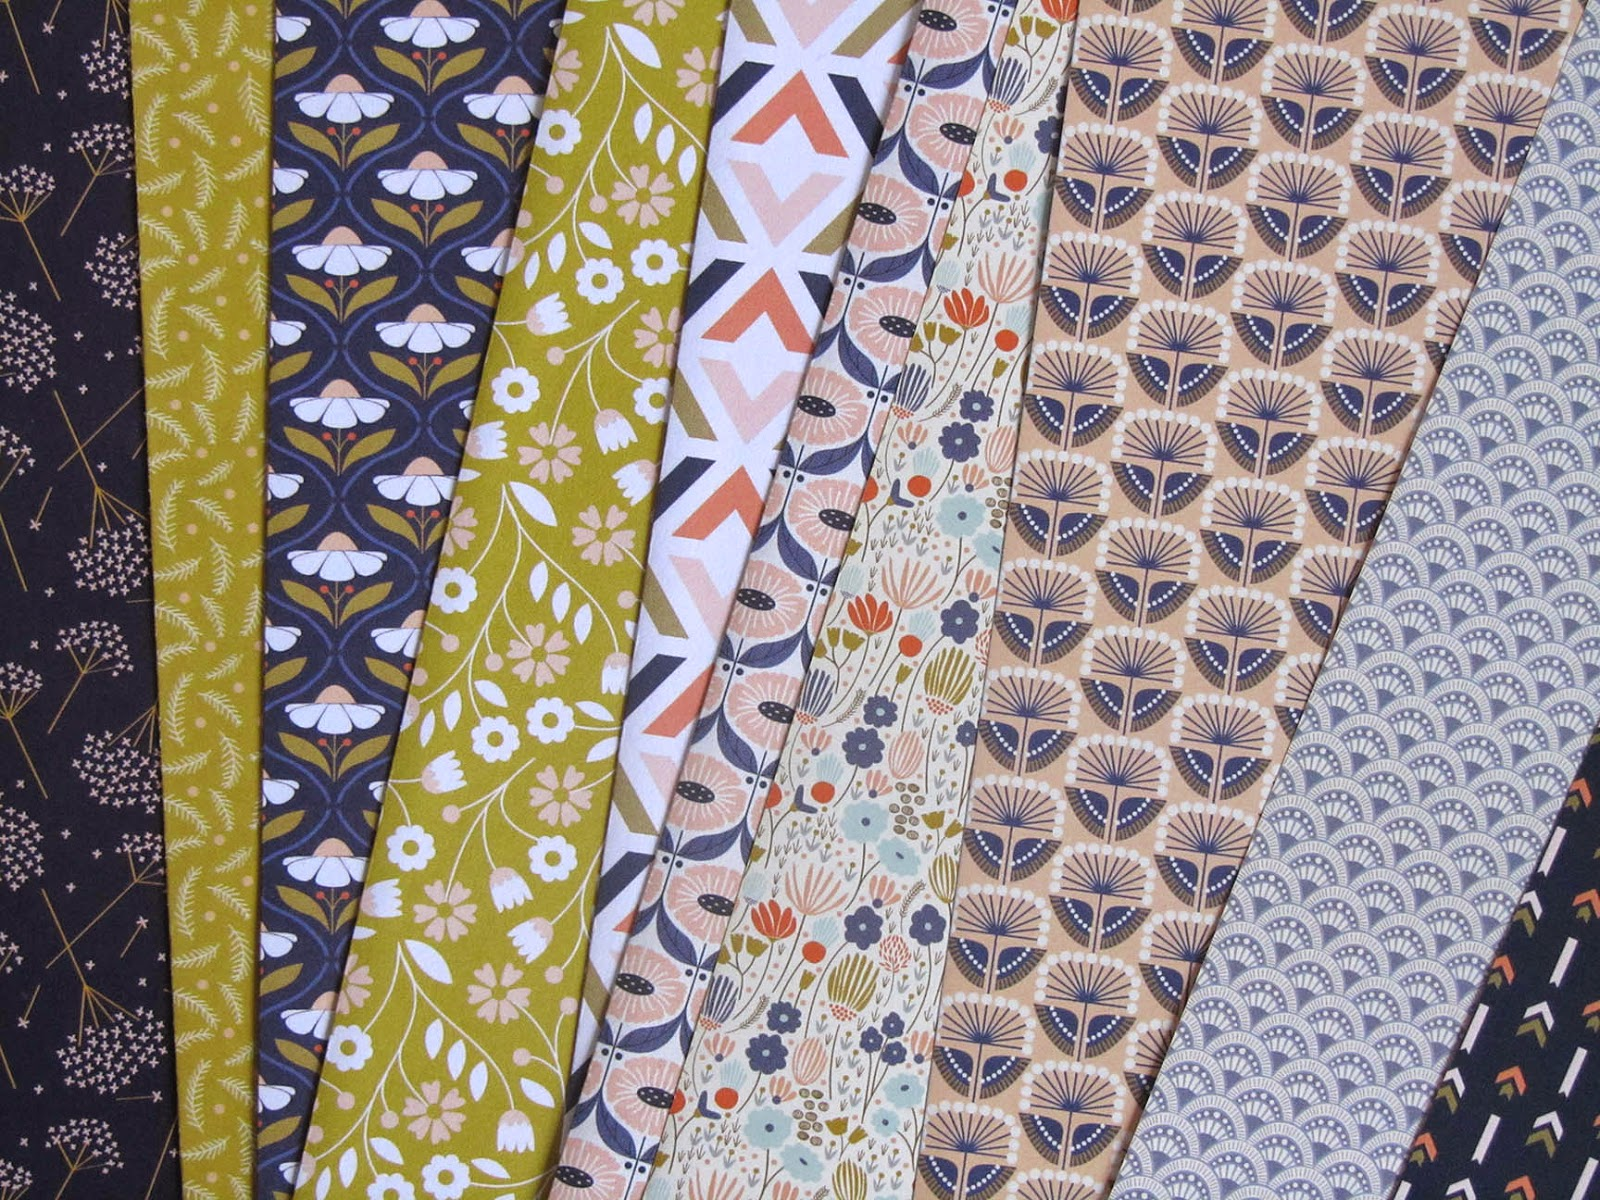 patterned paper designed by Elizabeth Olwen